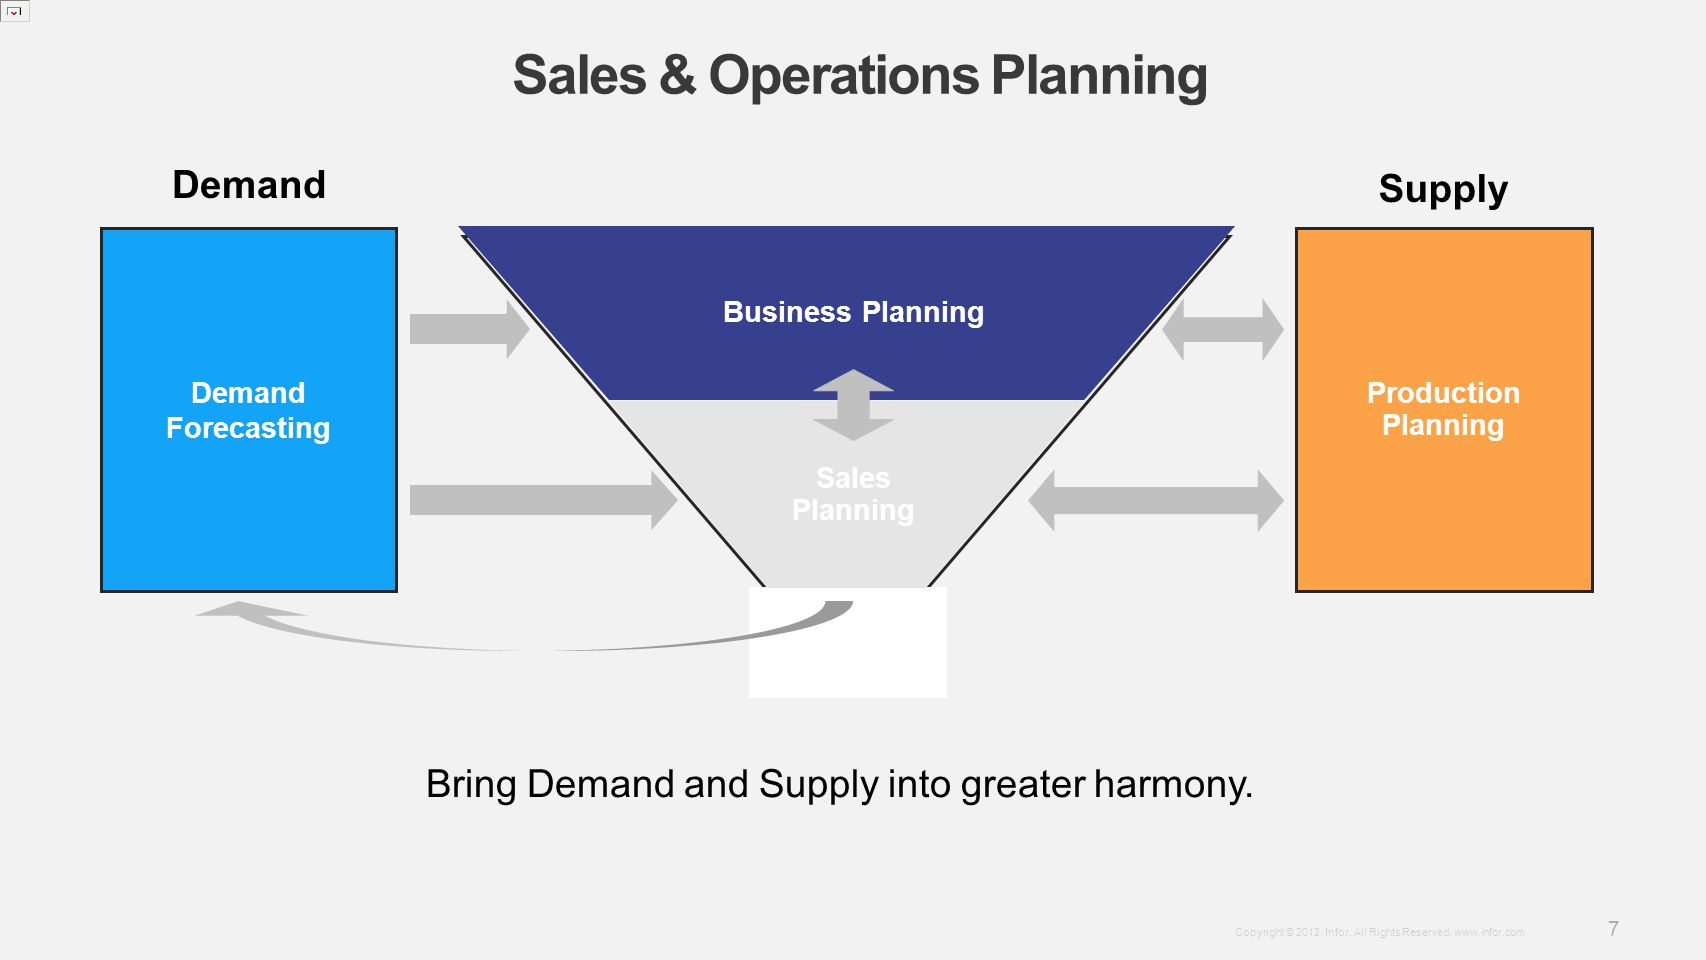 Template v4 September 27, 2012 7 Copyright © 2012. Infor. All Rights Reserved. www.infor.com Sales & Operations Planning Sales Planning Business Plann